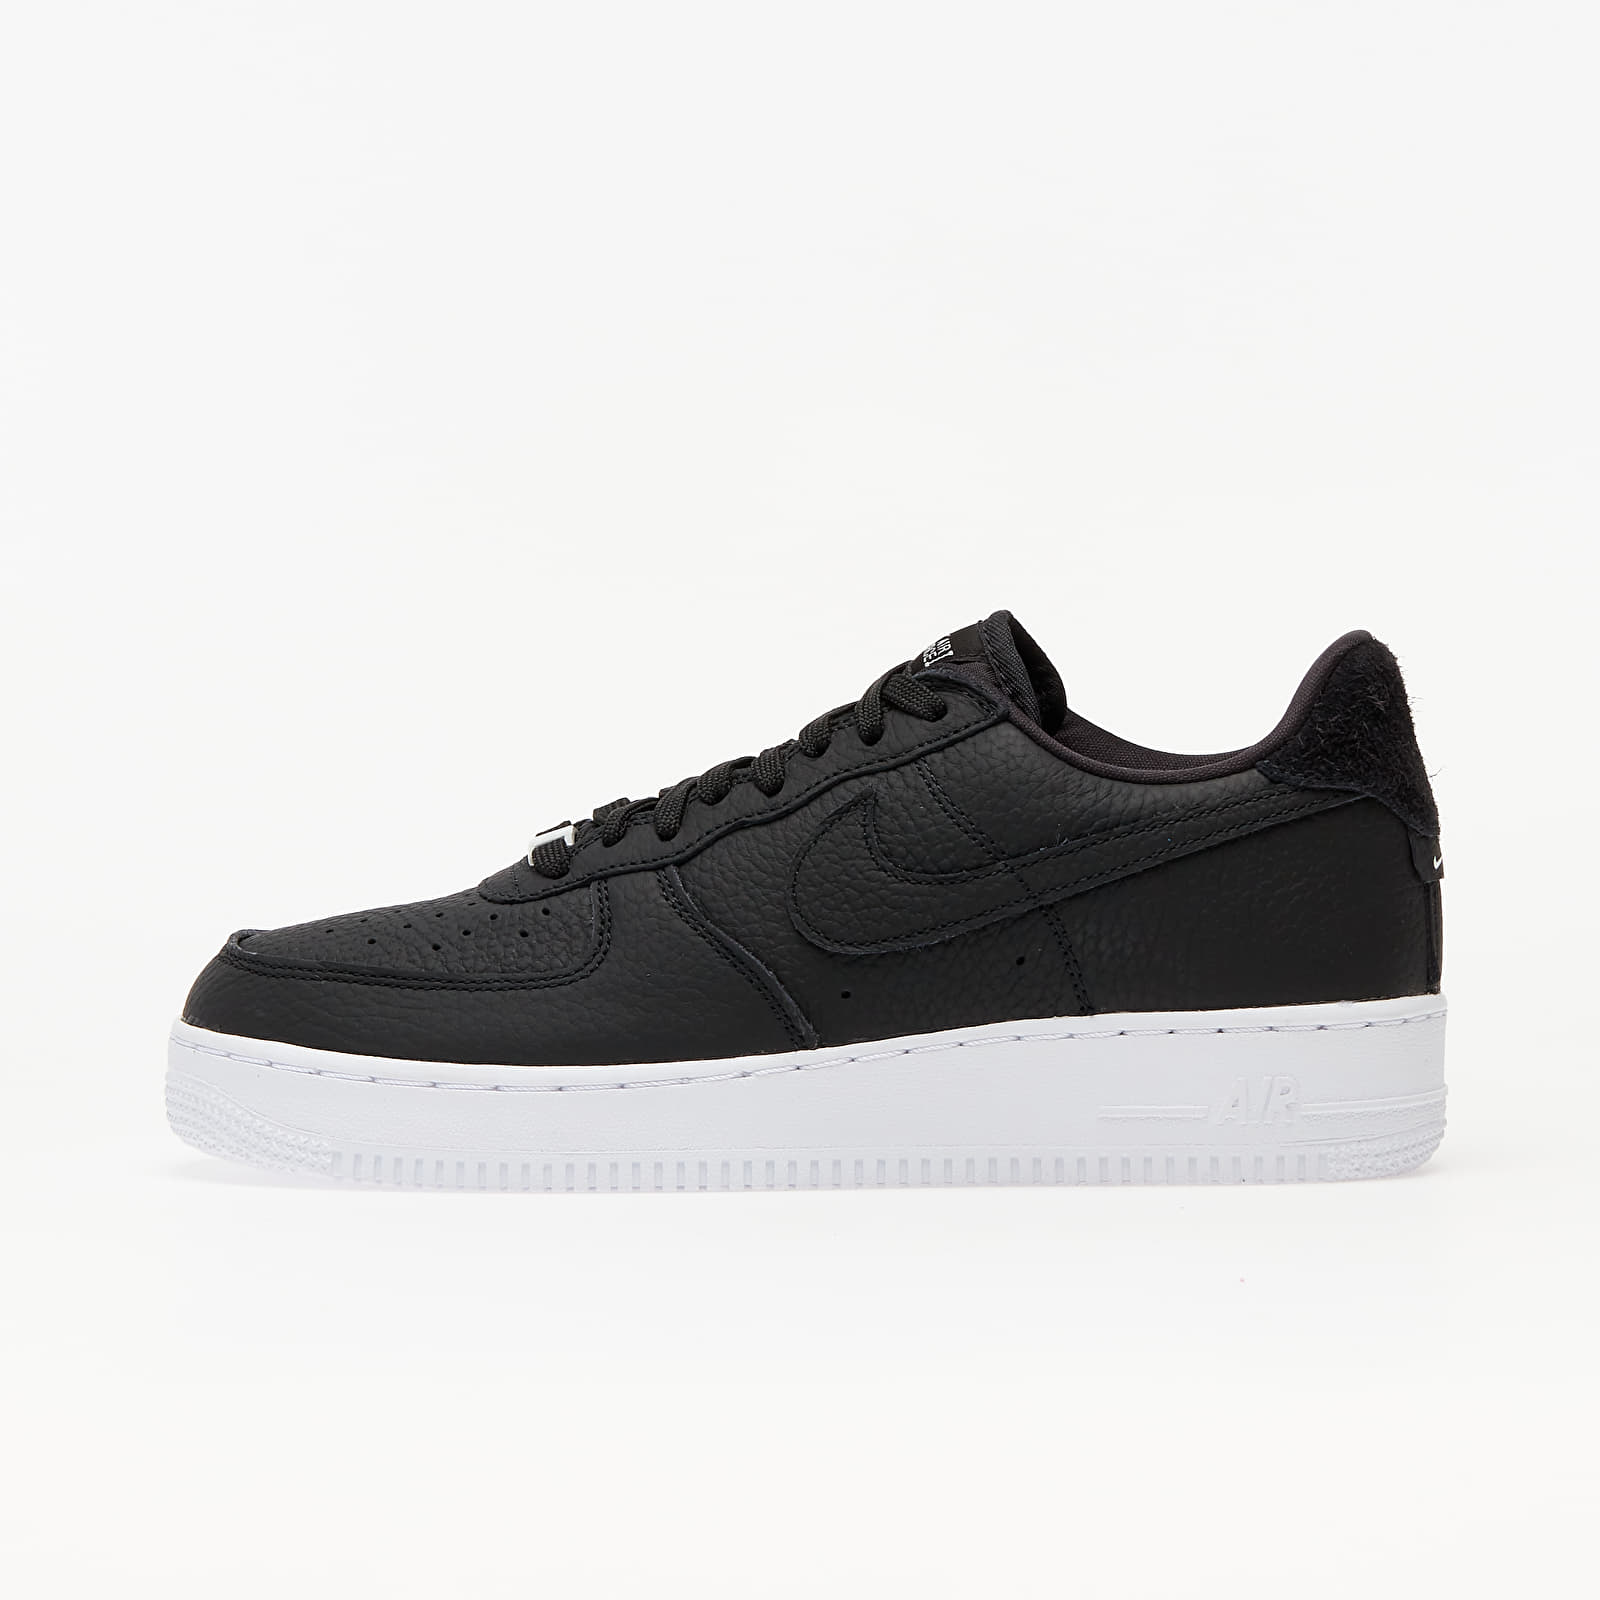 Men's shoes Nike Air Force 1 '07 Craft